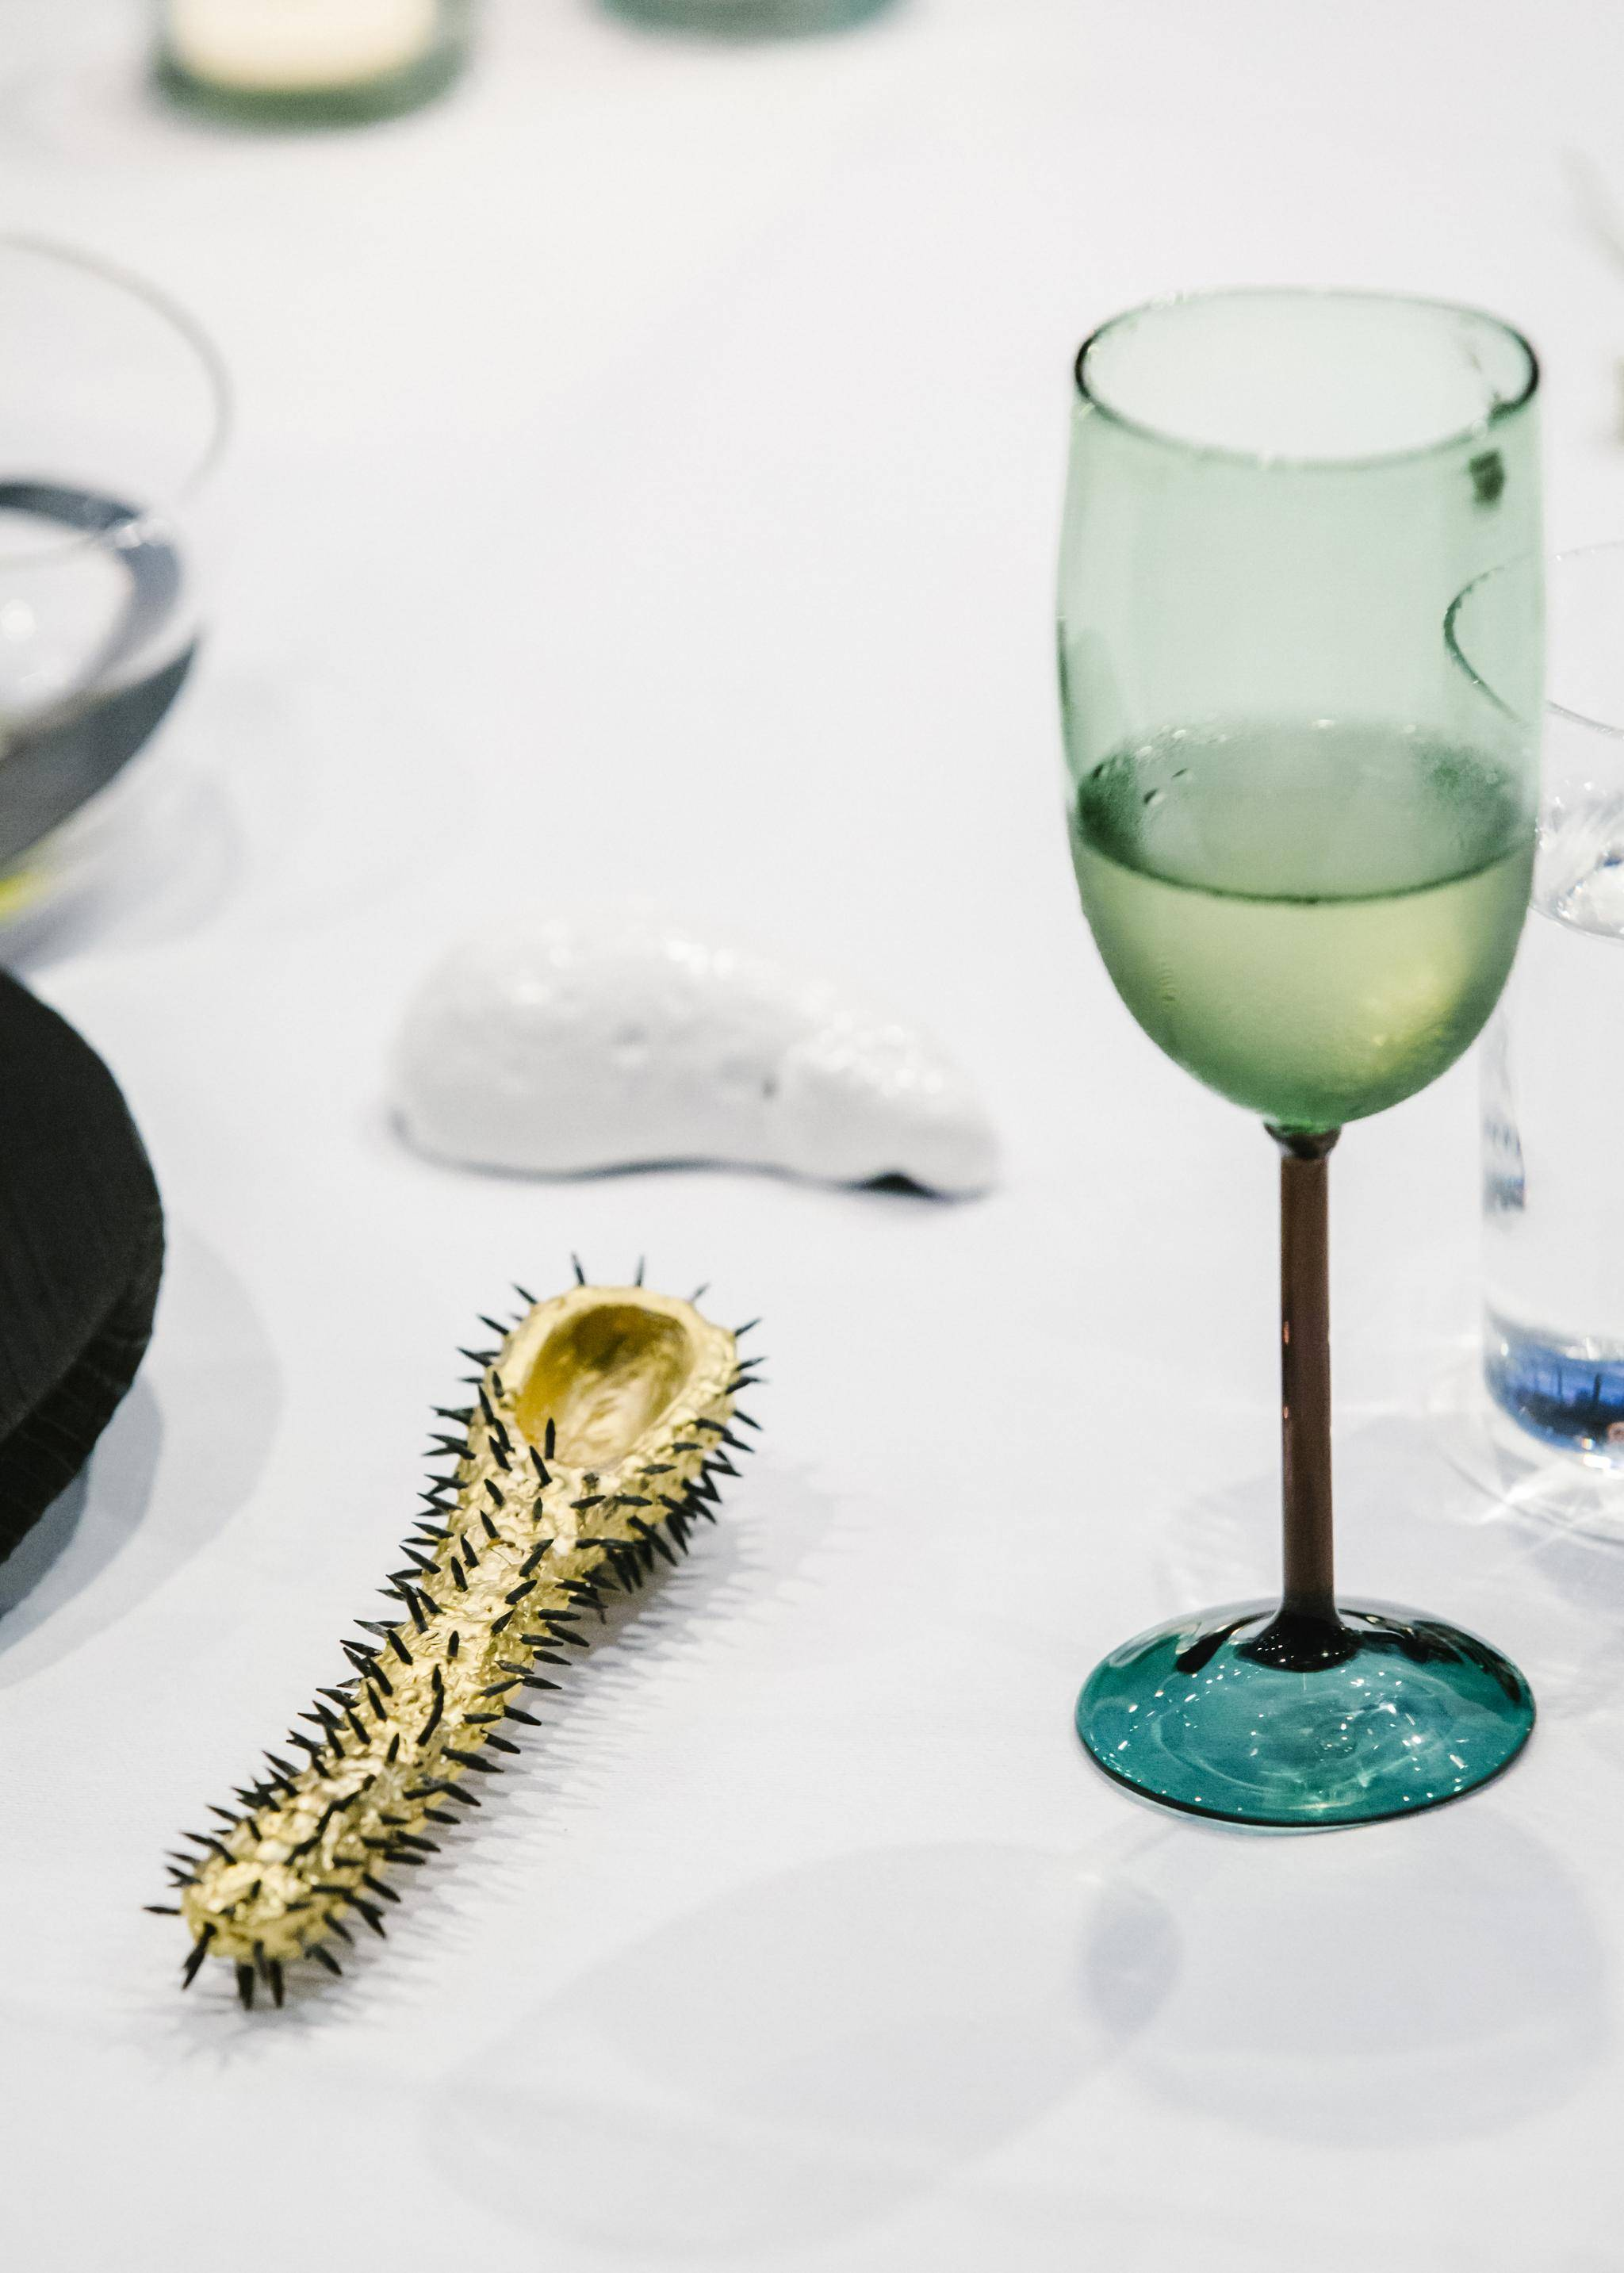 7 Deadly Sins Wine Glasses Designer Cutlery And Tableware For The Experimental Eater The